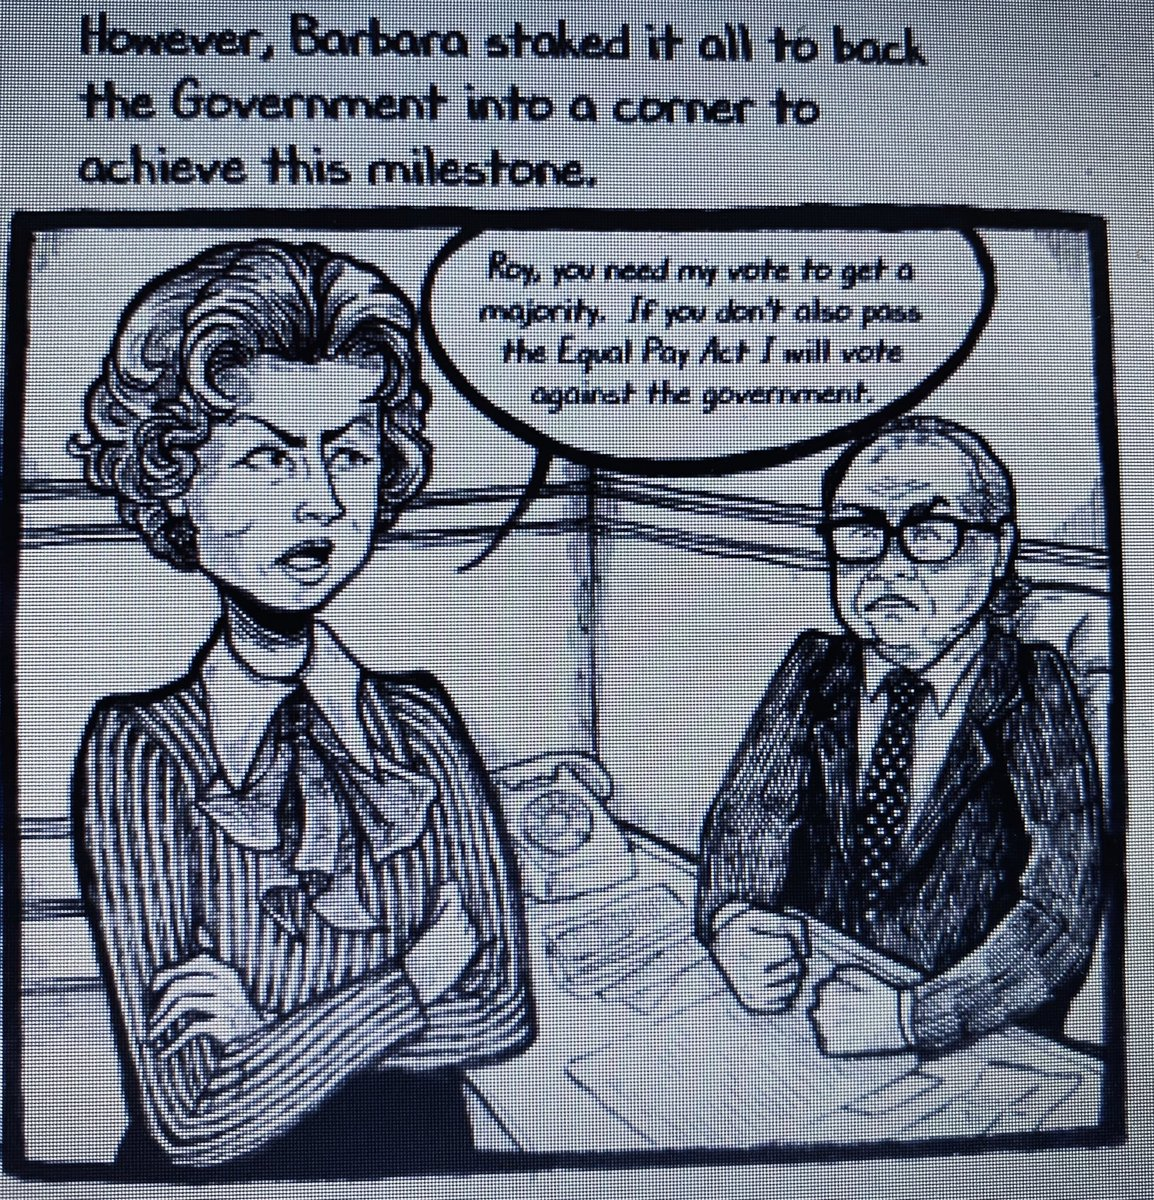 @RachelReevesMP @AnnelieseDodds @MarshadeCordova @Kate_HollernMP @LabourWomensNet @thefabians @FabianWomen @NickTorfaen @HarrietHarman Love this thread Rachel. I did my own wee tribute one. Barbara features in my #GraphicNovel documentary comic, long listed by @MyriadEditions #FirstGraphicNovelCompetition 2020 @HarrietHarman too! Lets hope it's #NotAnother50 years #EqualPay50 art by https://t.co/Up1nV2jspf https://t.co/6AEU8WxrA2